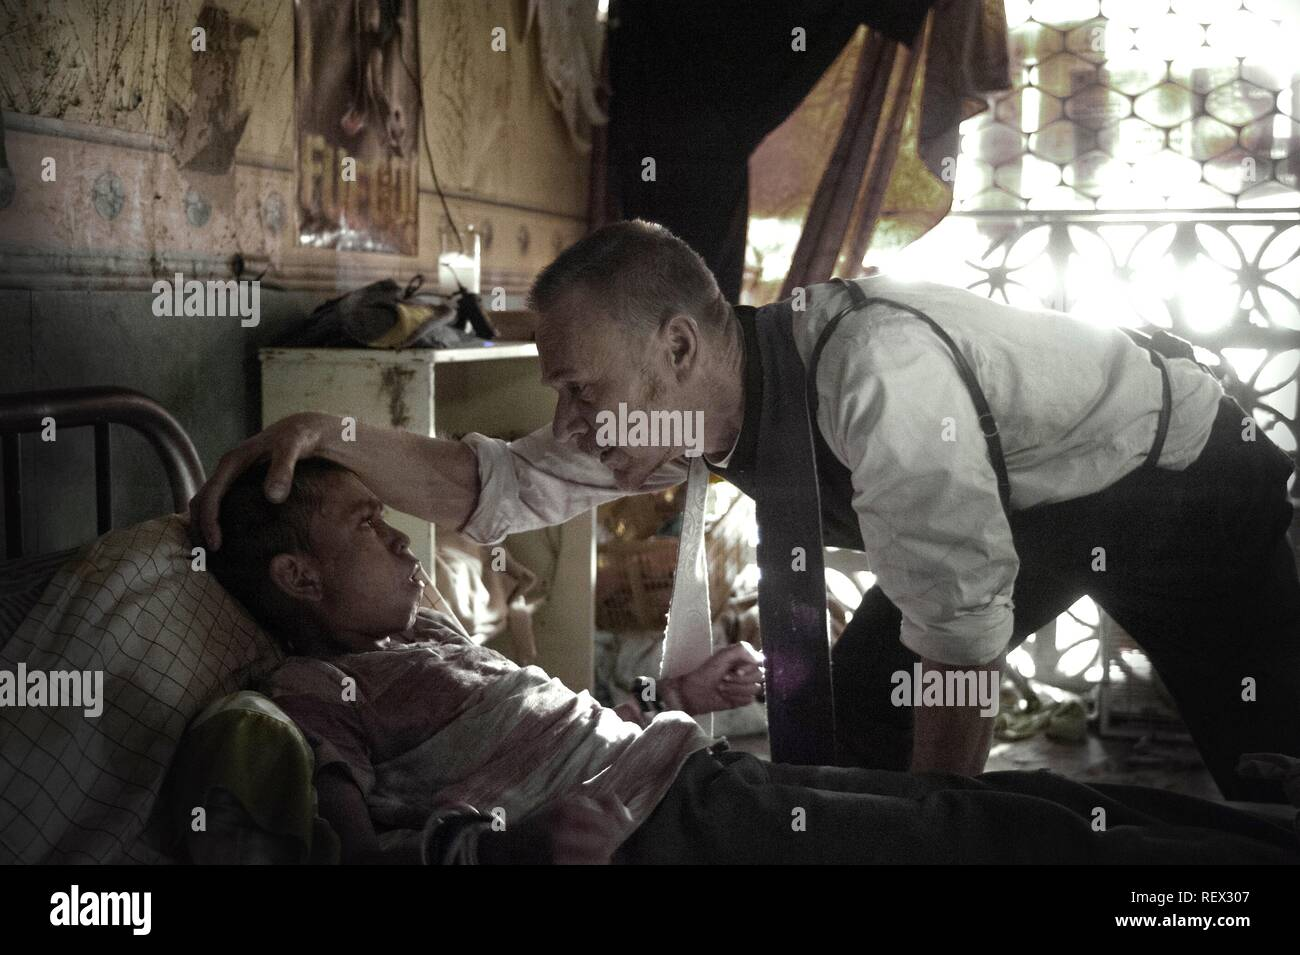 ISAAC LINARES & BEN DANIELS THE EXORCIST (2016) - Stock Image